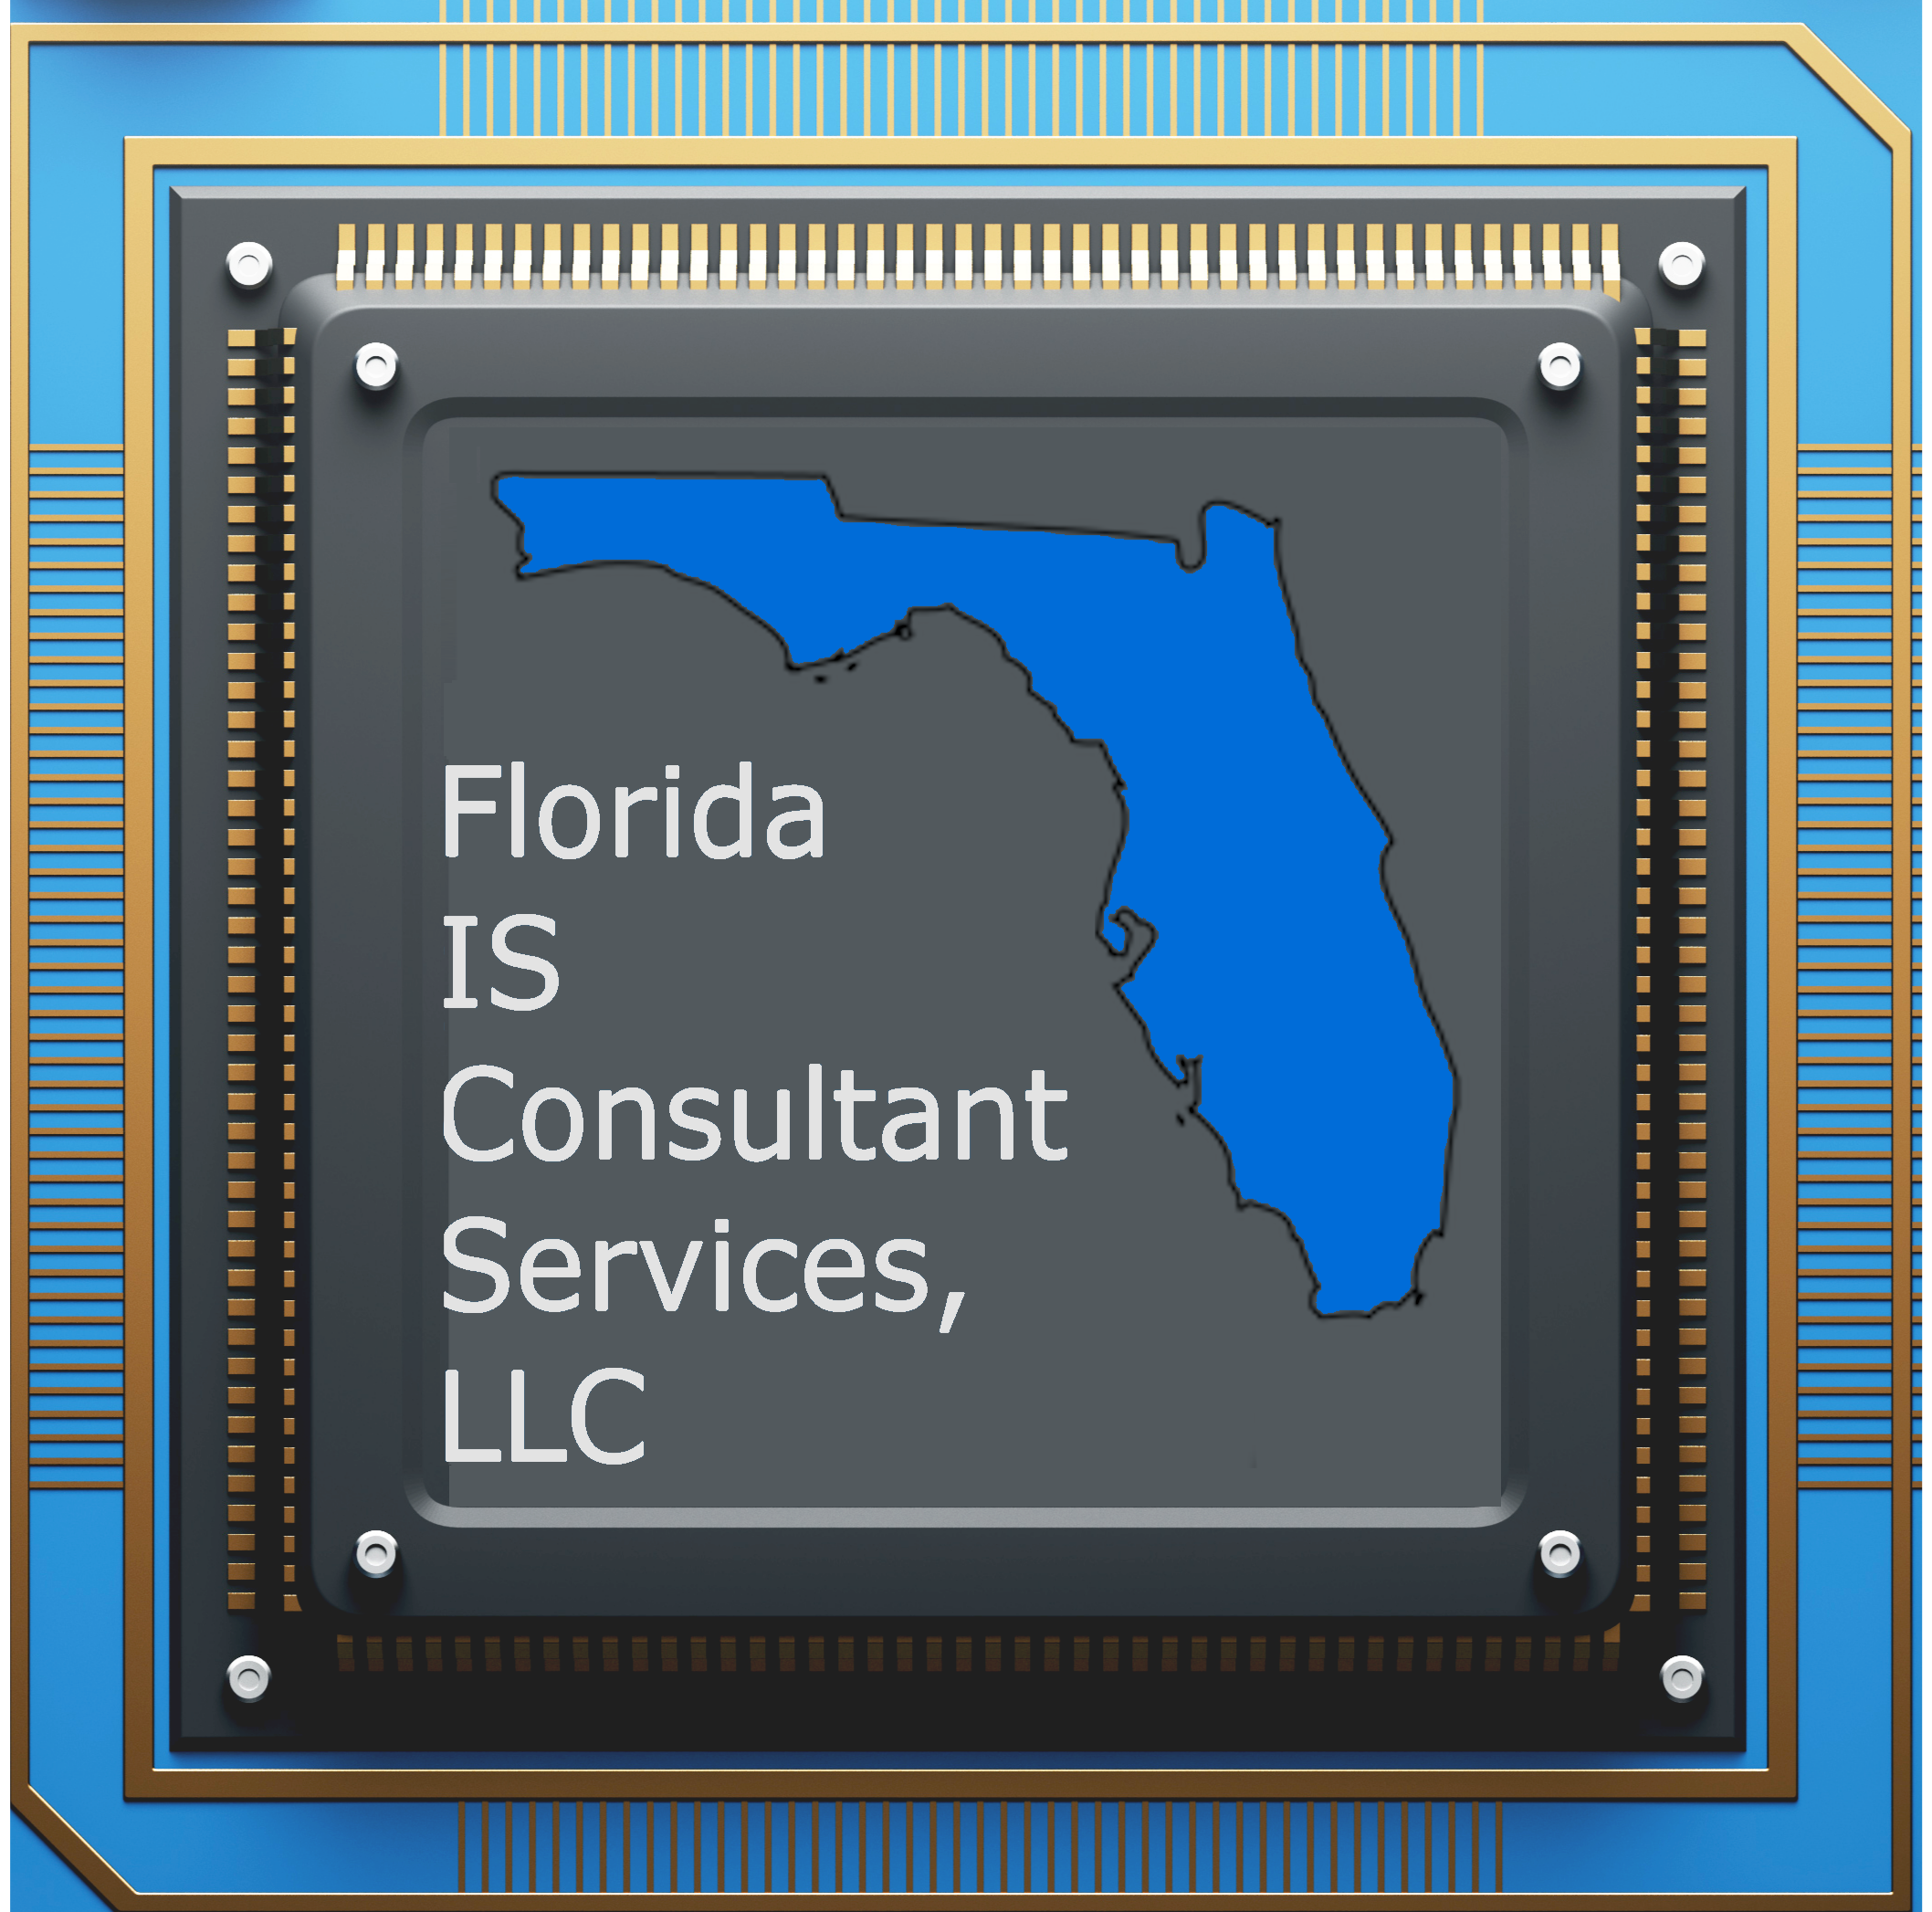 Florida IS Consultant Services, LLC